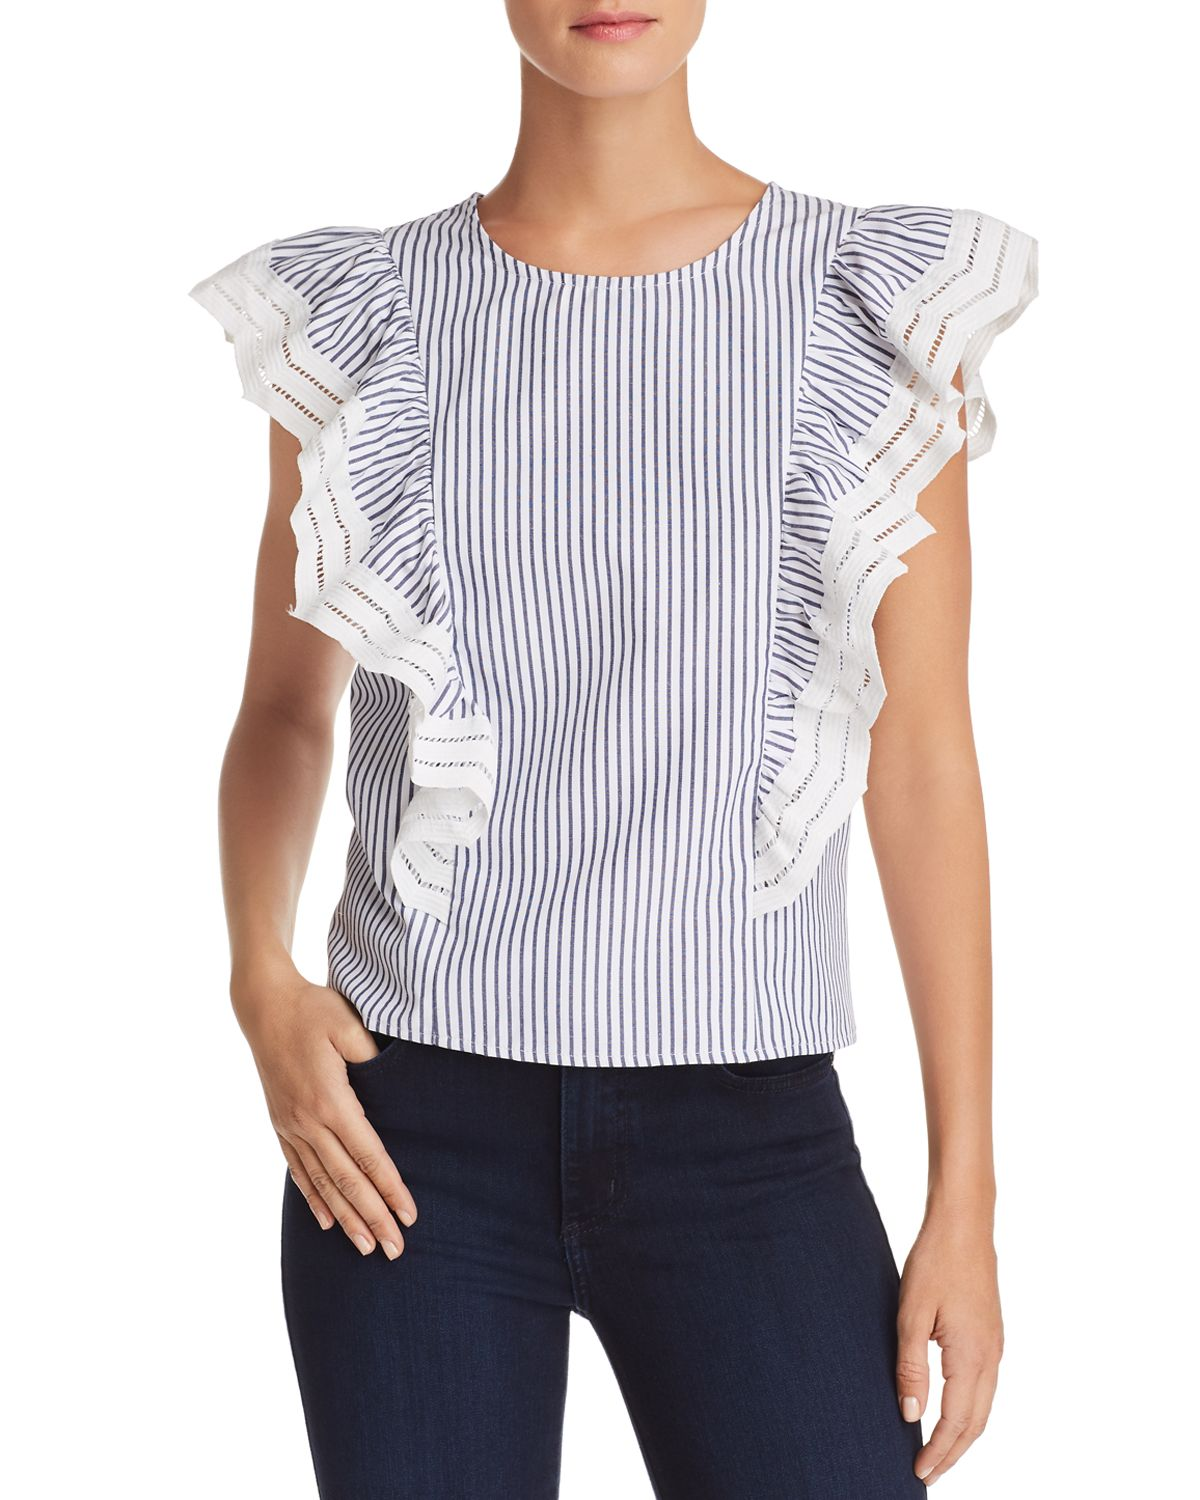 Striped Lace Trimmed Ruffle Top   100 Percents Exclusive by Aqua